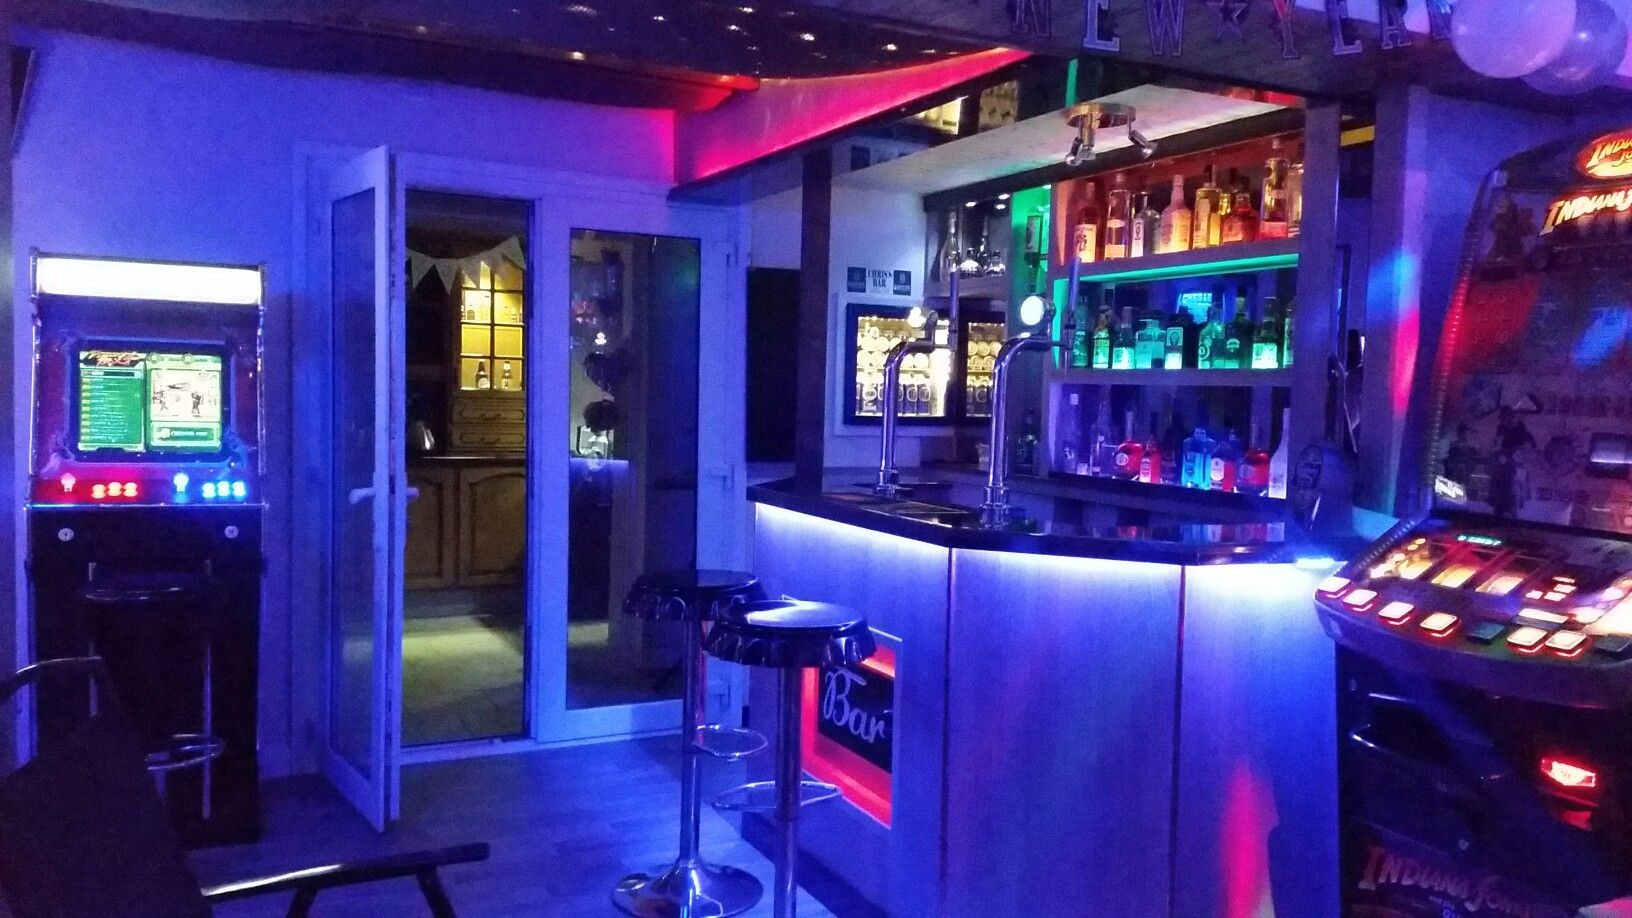 My Home bar / man cave with led lights, arcade machine and jukebox ...